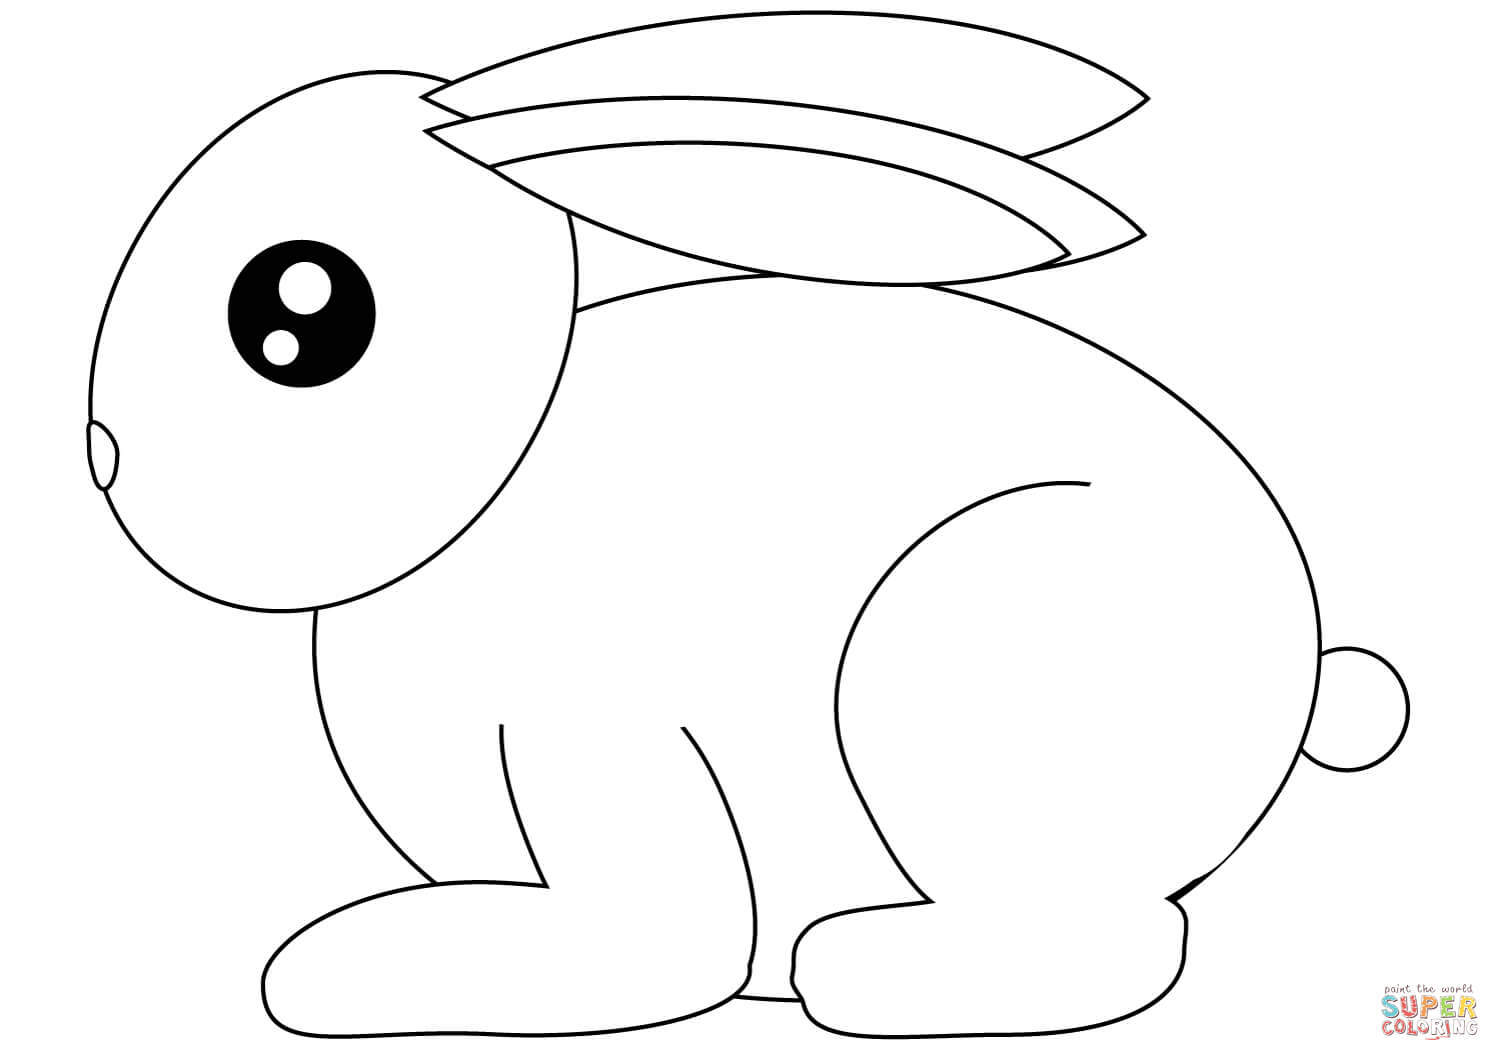 picture of a rabbit to color realistic image of a sweet little bunny coloring page picture to rabbit of a color